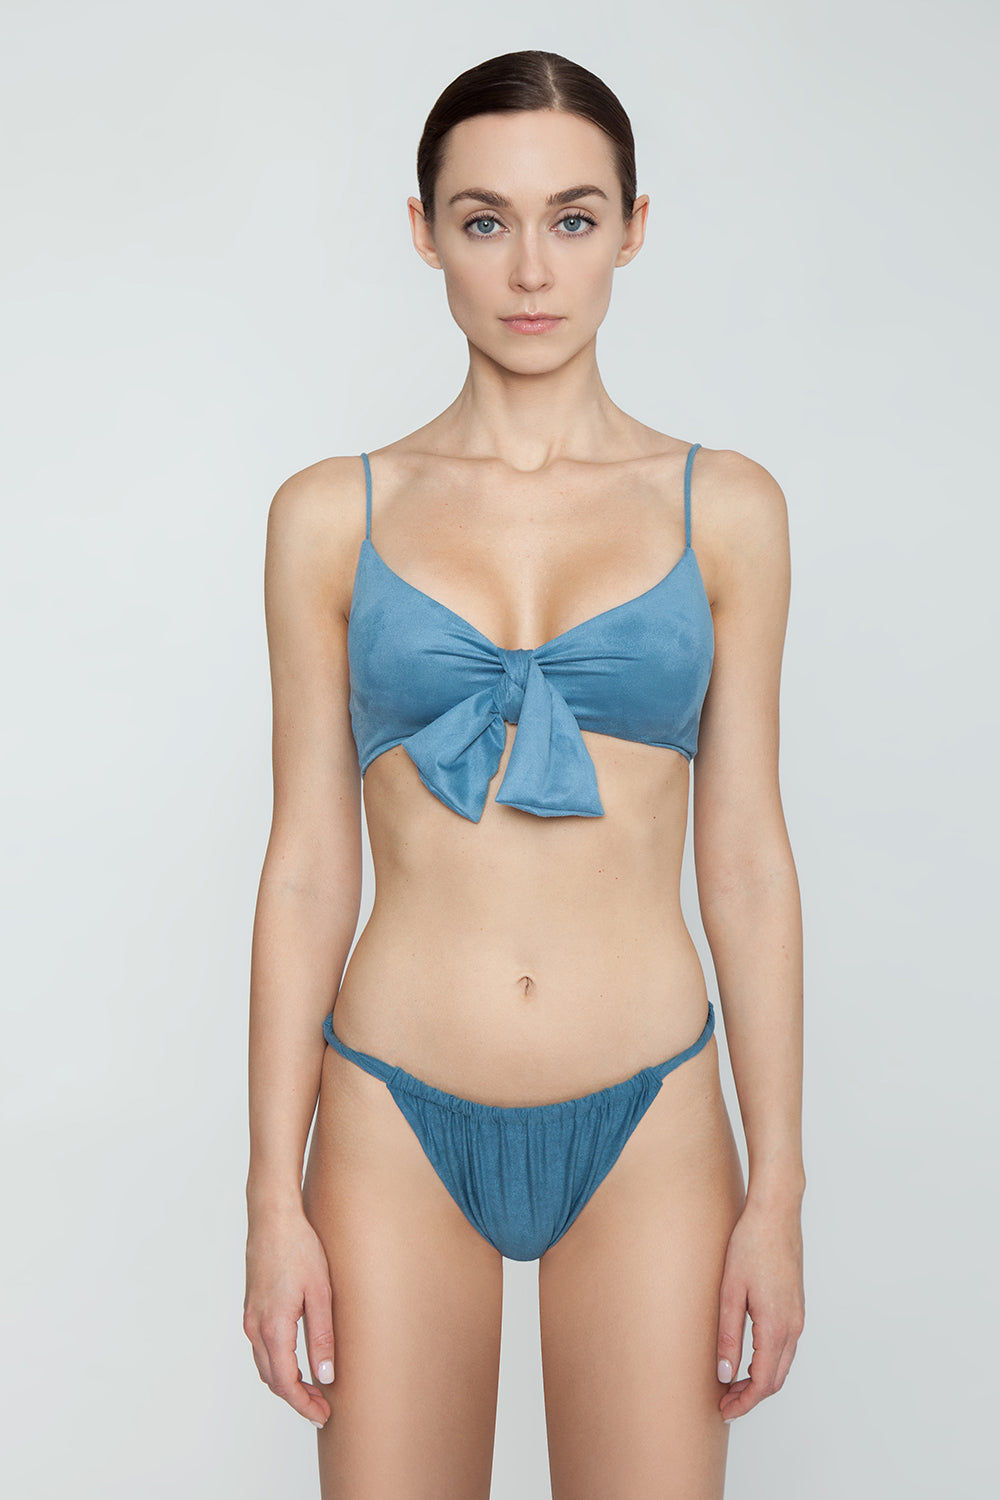 MONICA HANSEN BEACHWEAR Start Me Up Front Scrunch Bikini Bottom - Blue Bikini Bottom | Blue| Monica Hansen Beachwear Start Me Up Front Scrunch Bikini Bottom - Blue. Features:  Scrunch detail in front and U shaped back High cut leg Cheeky coverage Double fabric on the inside instead of lining Italian fabric 85% Nylon 15% Elastane Manufactured in Italy Hand wash cold.  Dry Flat Front View